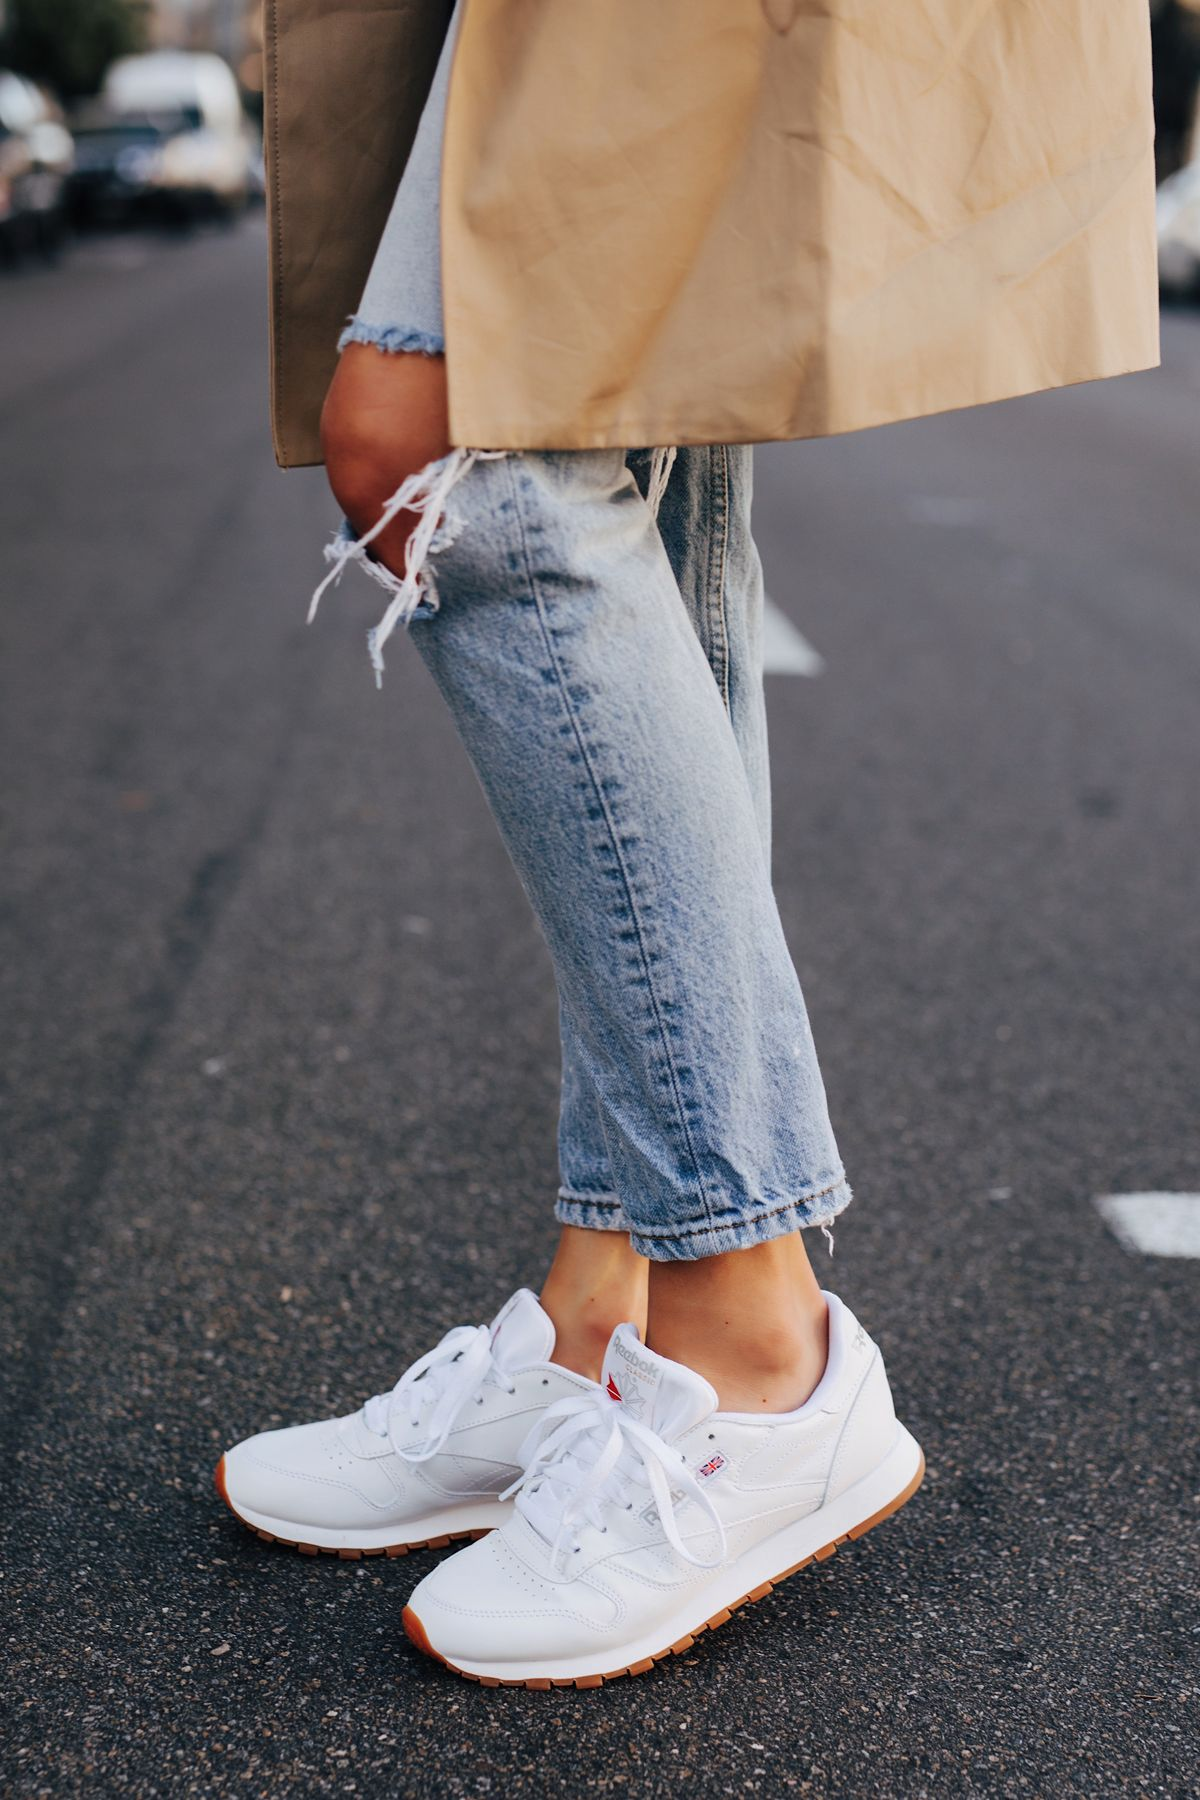 Sotavento Todos de múltiples fines  Fashion Jackson Wearing Ripped Jeans Reebok Classic Leather White Sneakers  3 | Fashion jackson, White sneakers outfit, Sneakers outfit